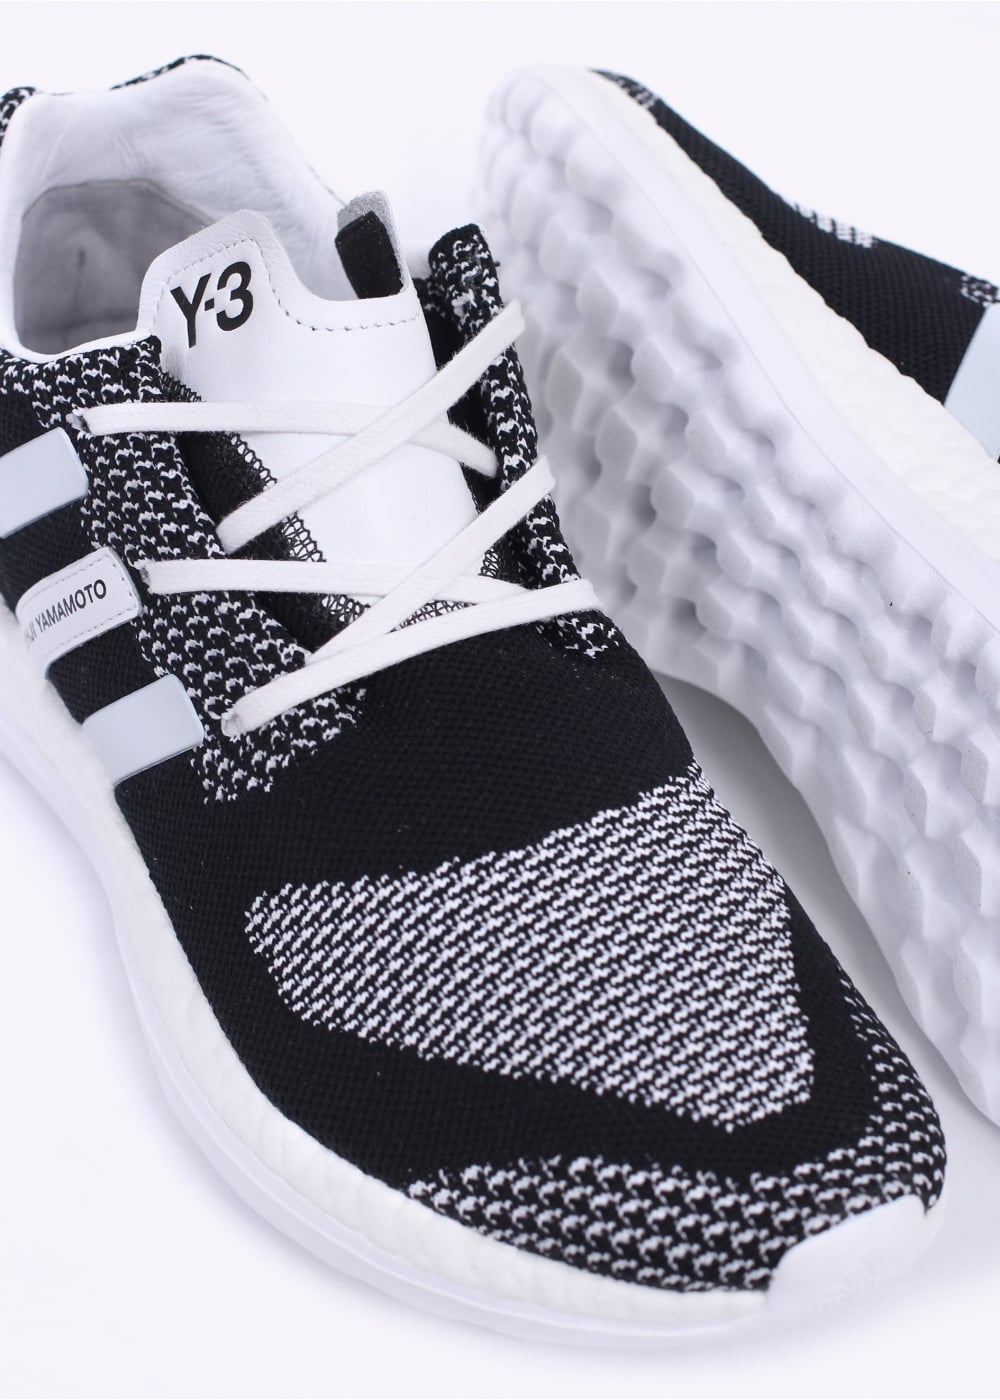 adidas y 3 yohji yamamoto pure boost zg knit los granados. Black Bedroom Furniture Sets. Home Design Ideas